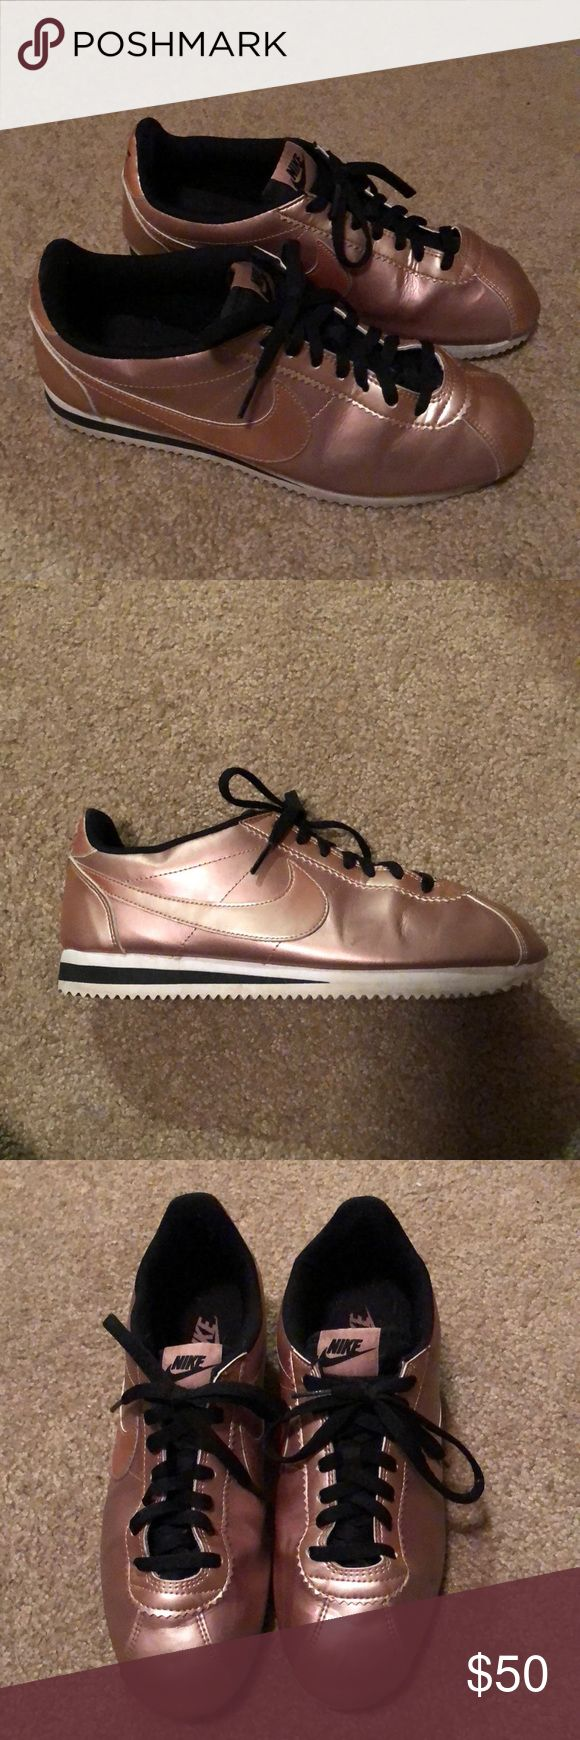 Nike Cortez rose gold women's 10.5 Nike classic Cortez  Rose gold Size women's 10.5 (fits like a 10) Only worn a couple times, great condition with lots of wear left Nike Shoes Sneakers